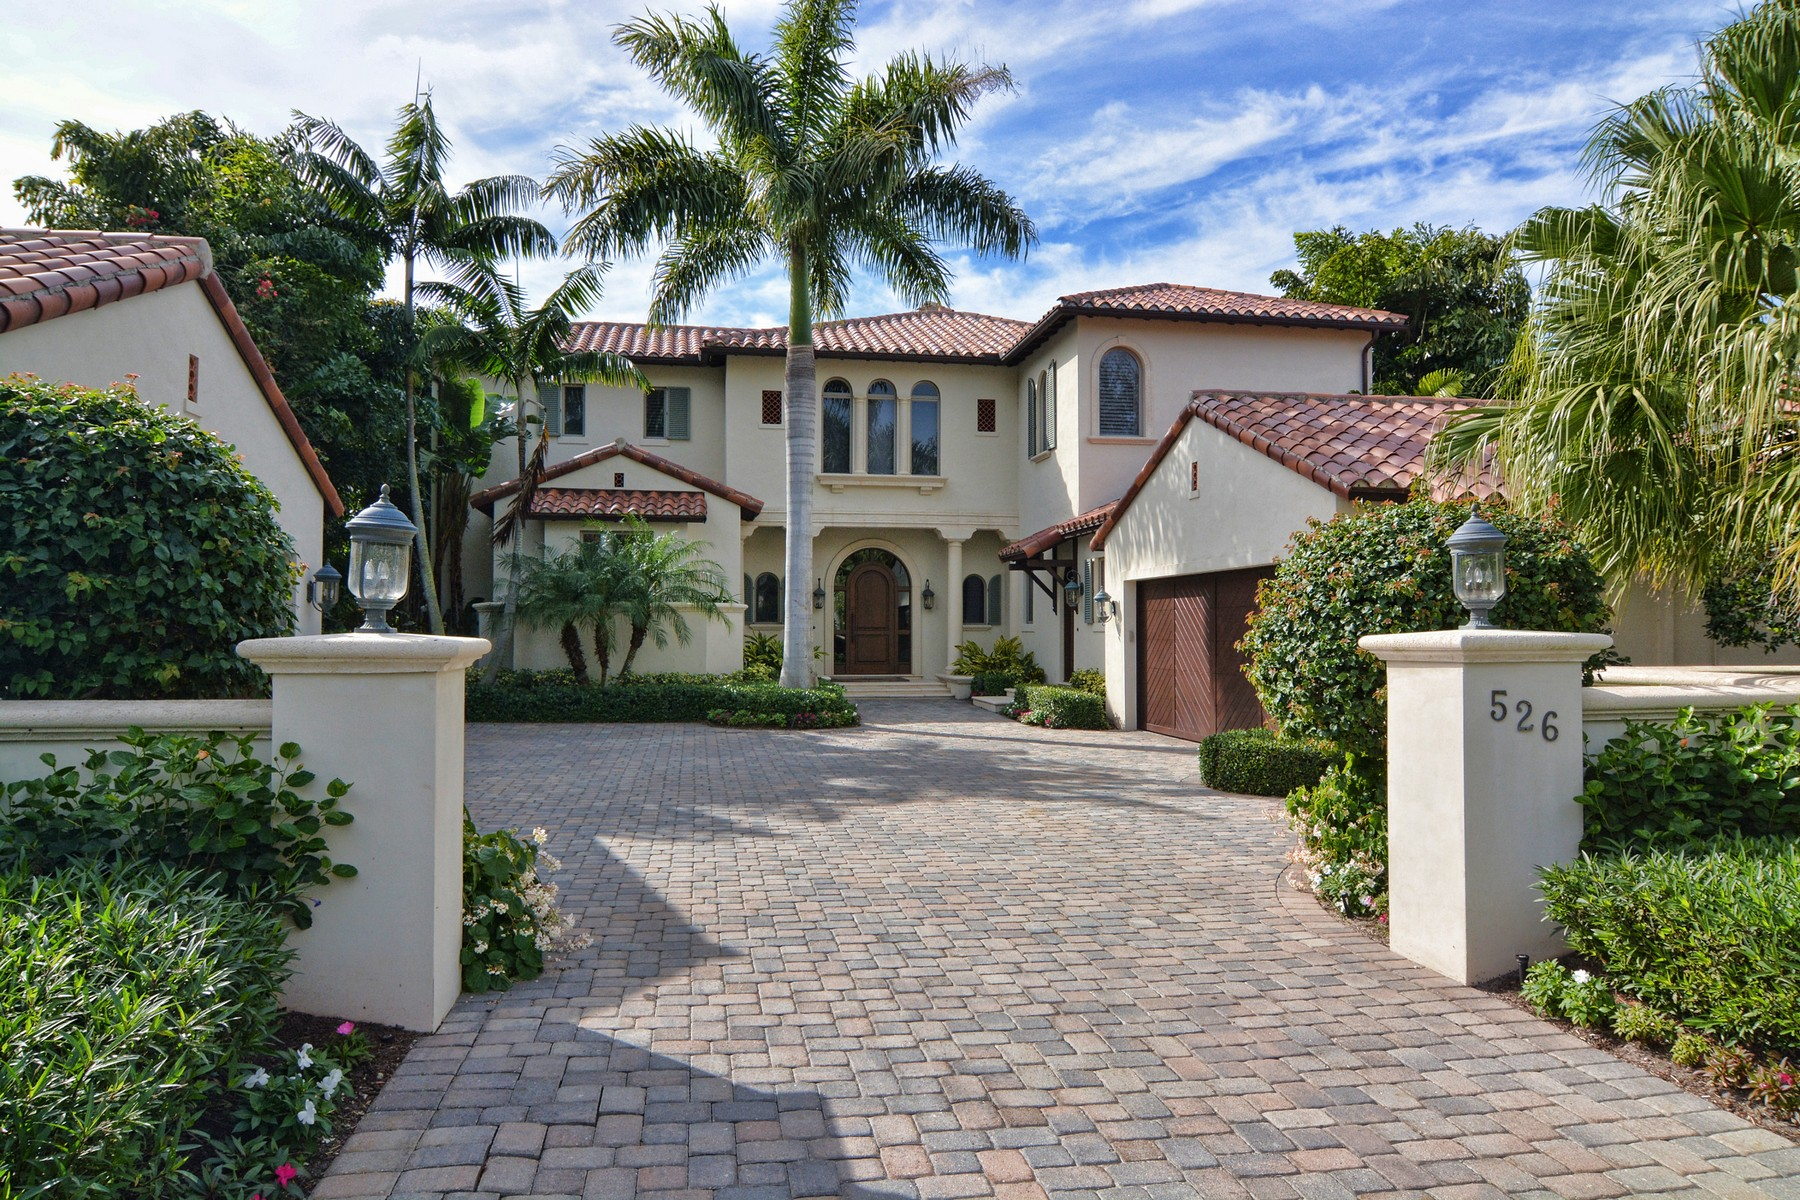 Villa per Vendita alle ore 526 Bald Eagle Drive at Trump National Jupiter, Florida, 33477 Stati Uniti